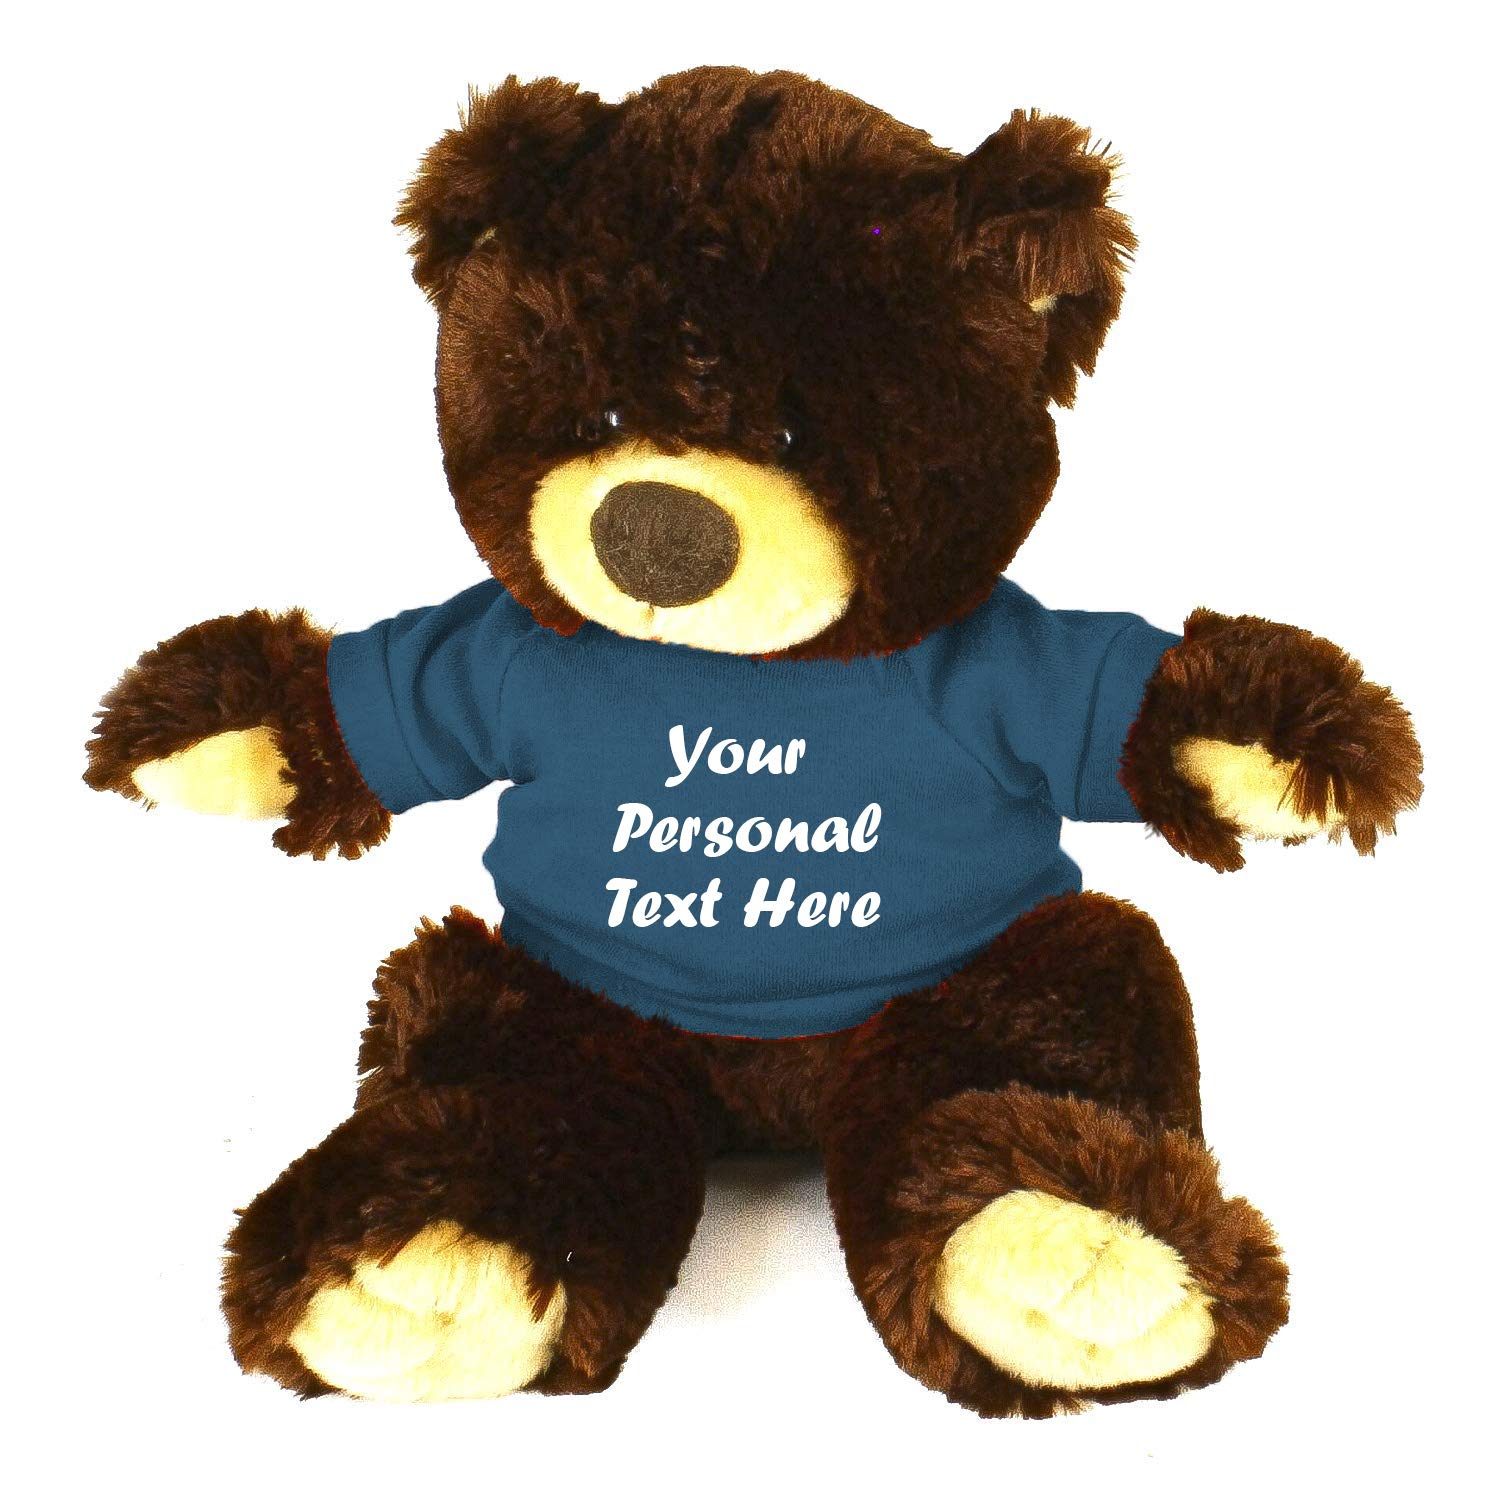 Plushland Chocolate Noah Teddy Bear 12 Inch, Stuffed Animal Personalized Gift - Custom Text on Shirt - Great Present for Mothers Day, Valentine Day, Graduation Day, Birthday (Teal Shirt)